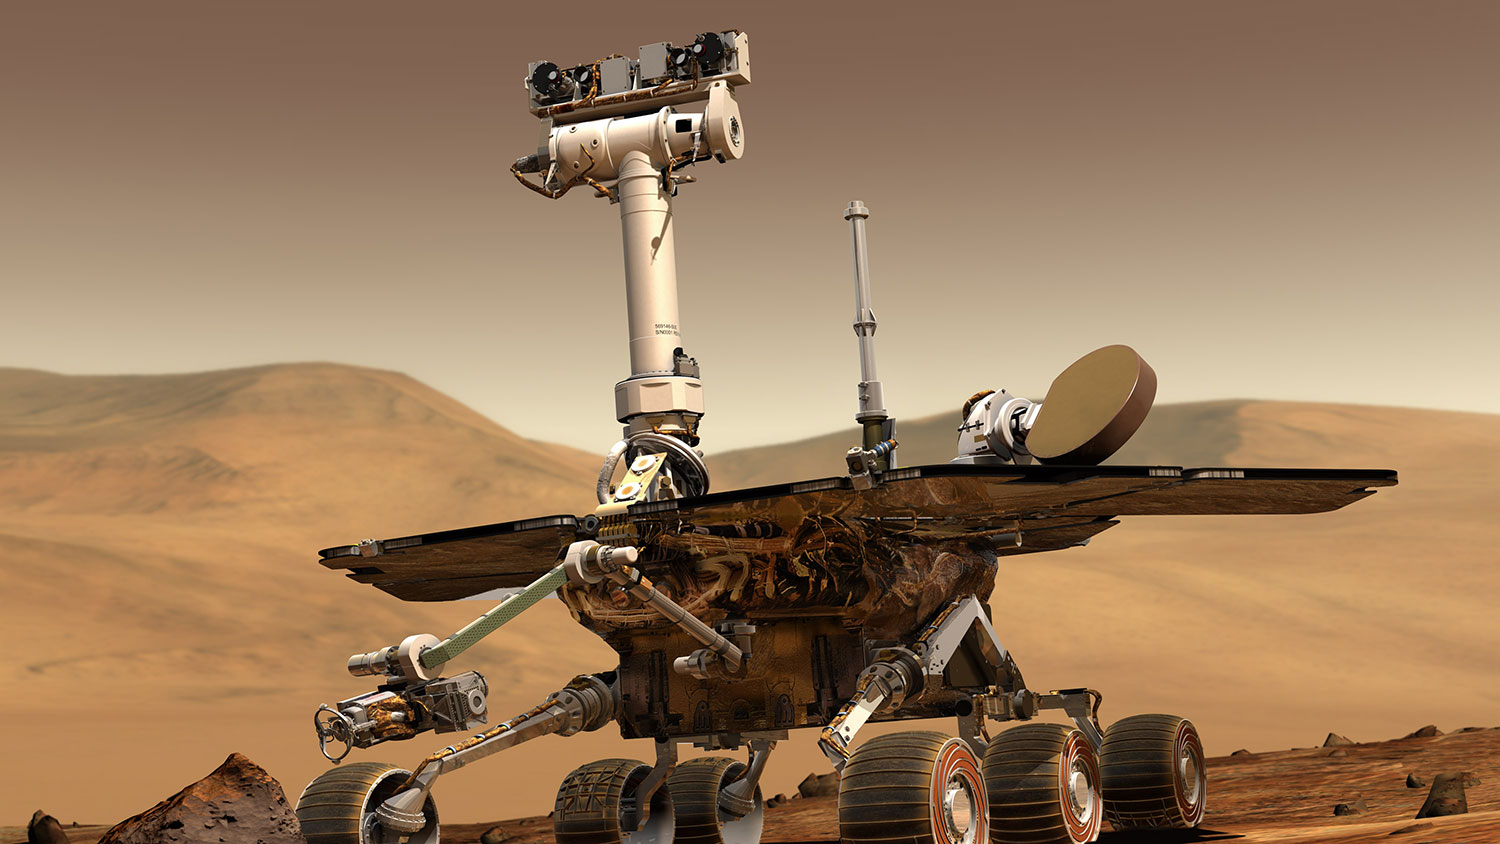 NASA releases Mars rover game for Curiosity anniversary | Digital Trends